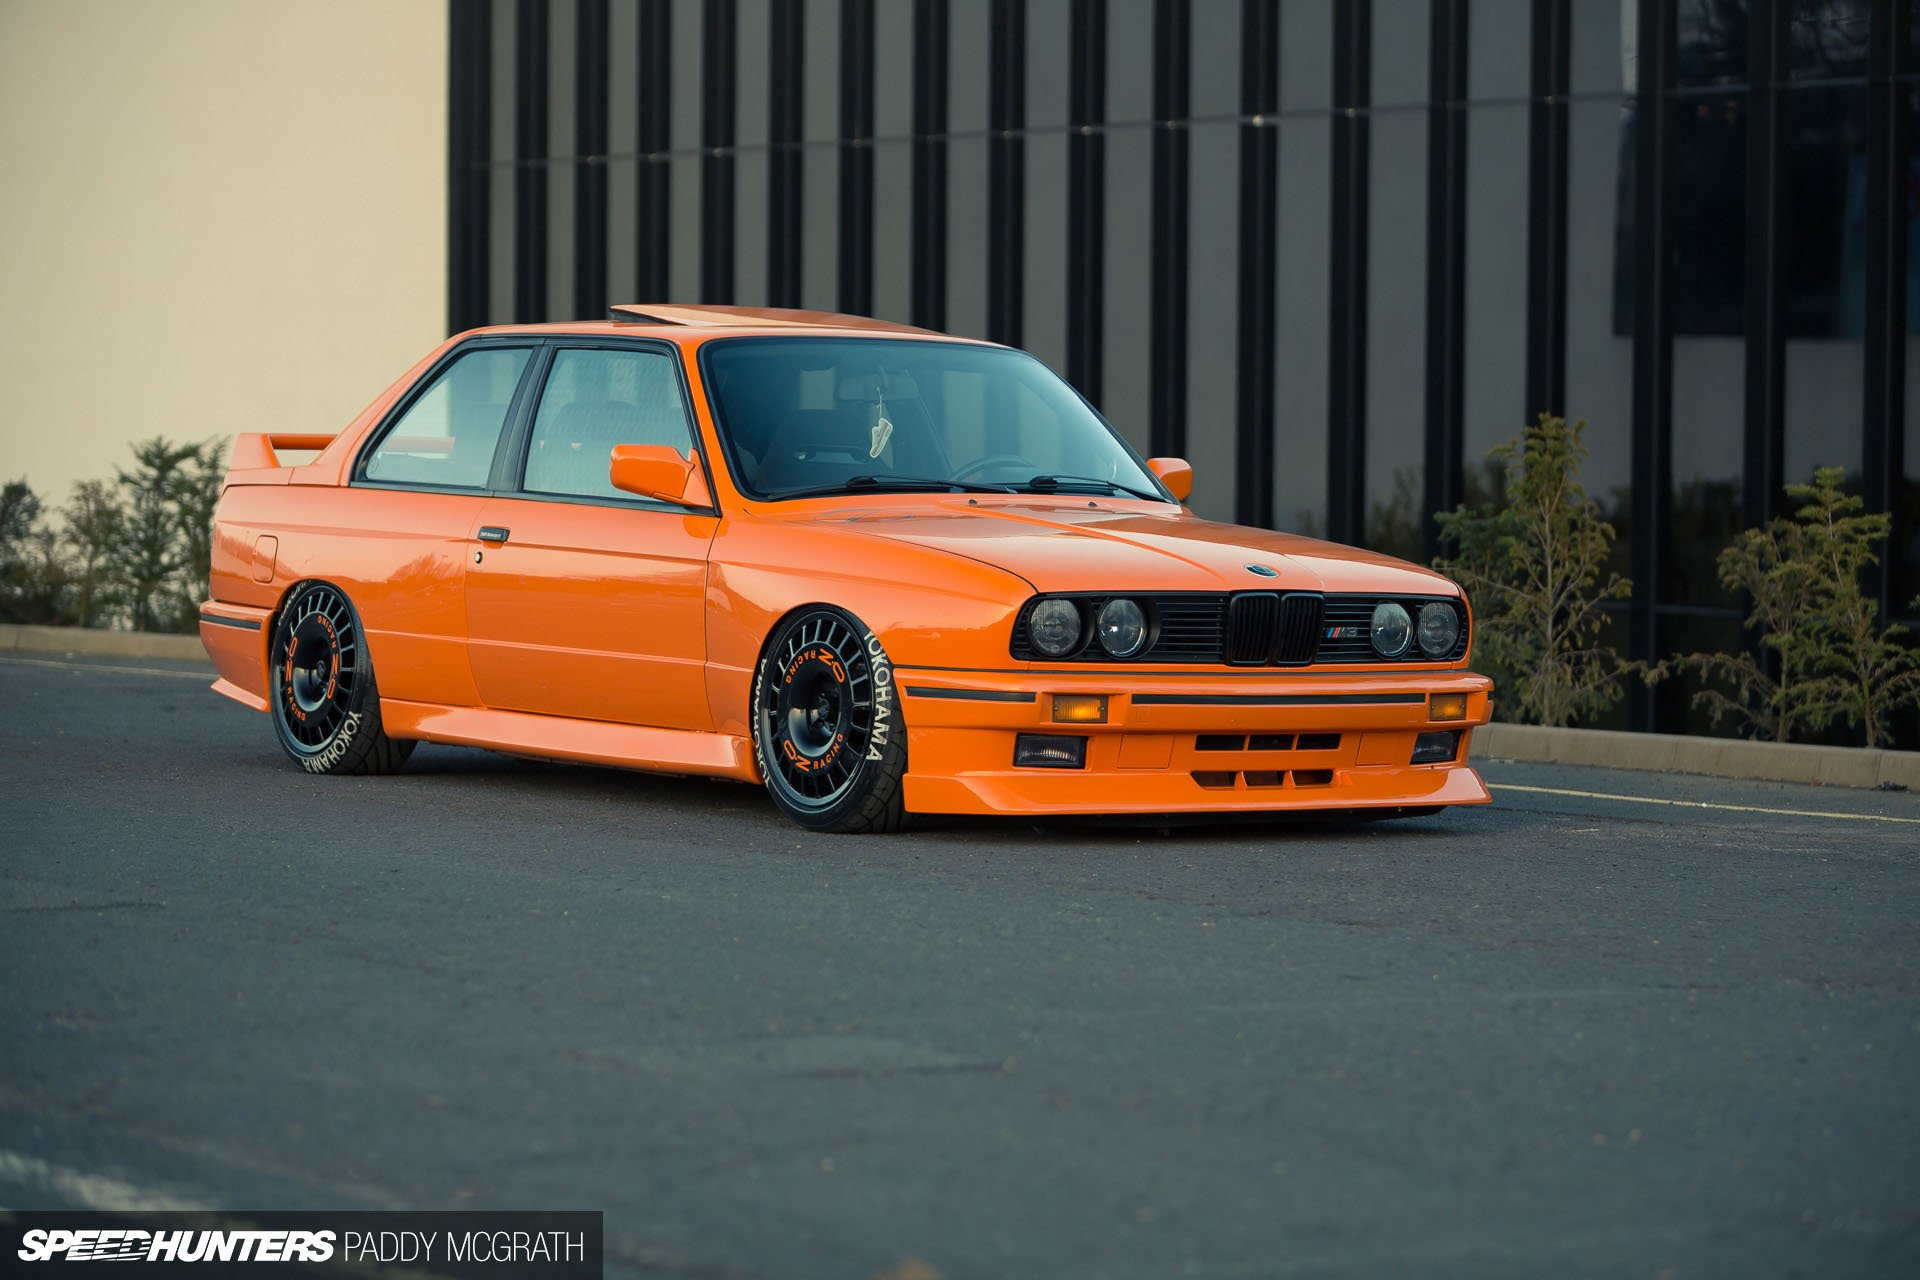 e30 bmw m 3 tuning h wallpaper 1920x1280 320652 wallpaperup. Black Bedroom Furniture Sets. Home Design Ideas